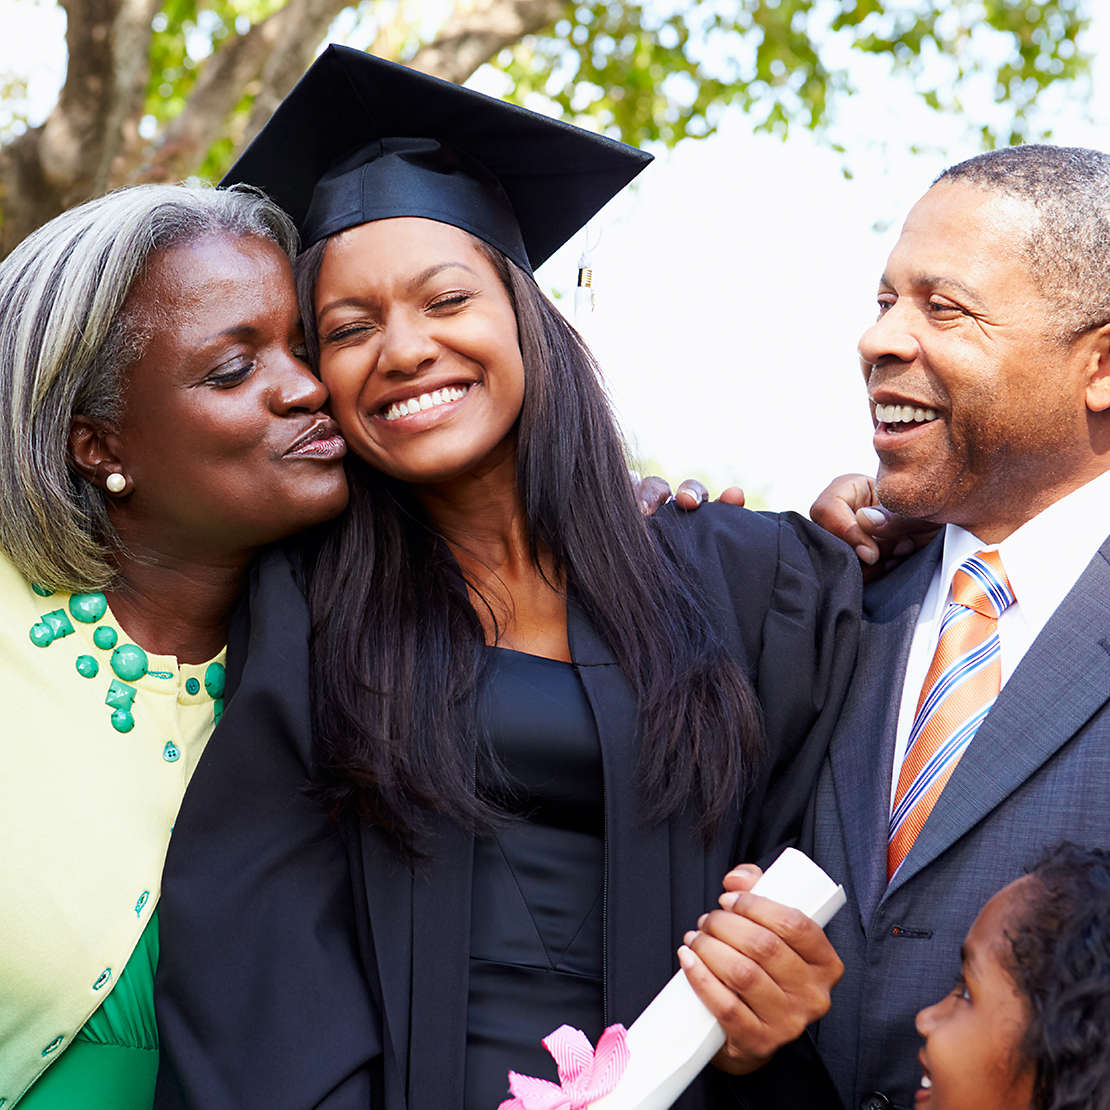 Parents celebrate daughter's college graduation day